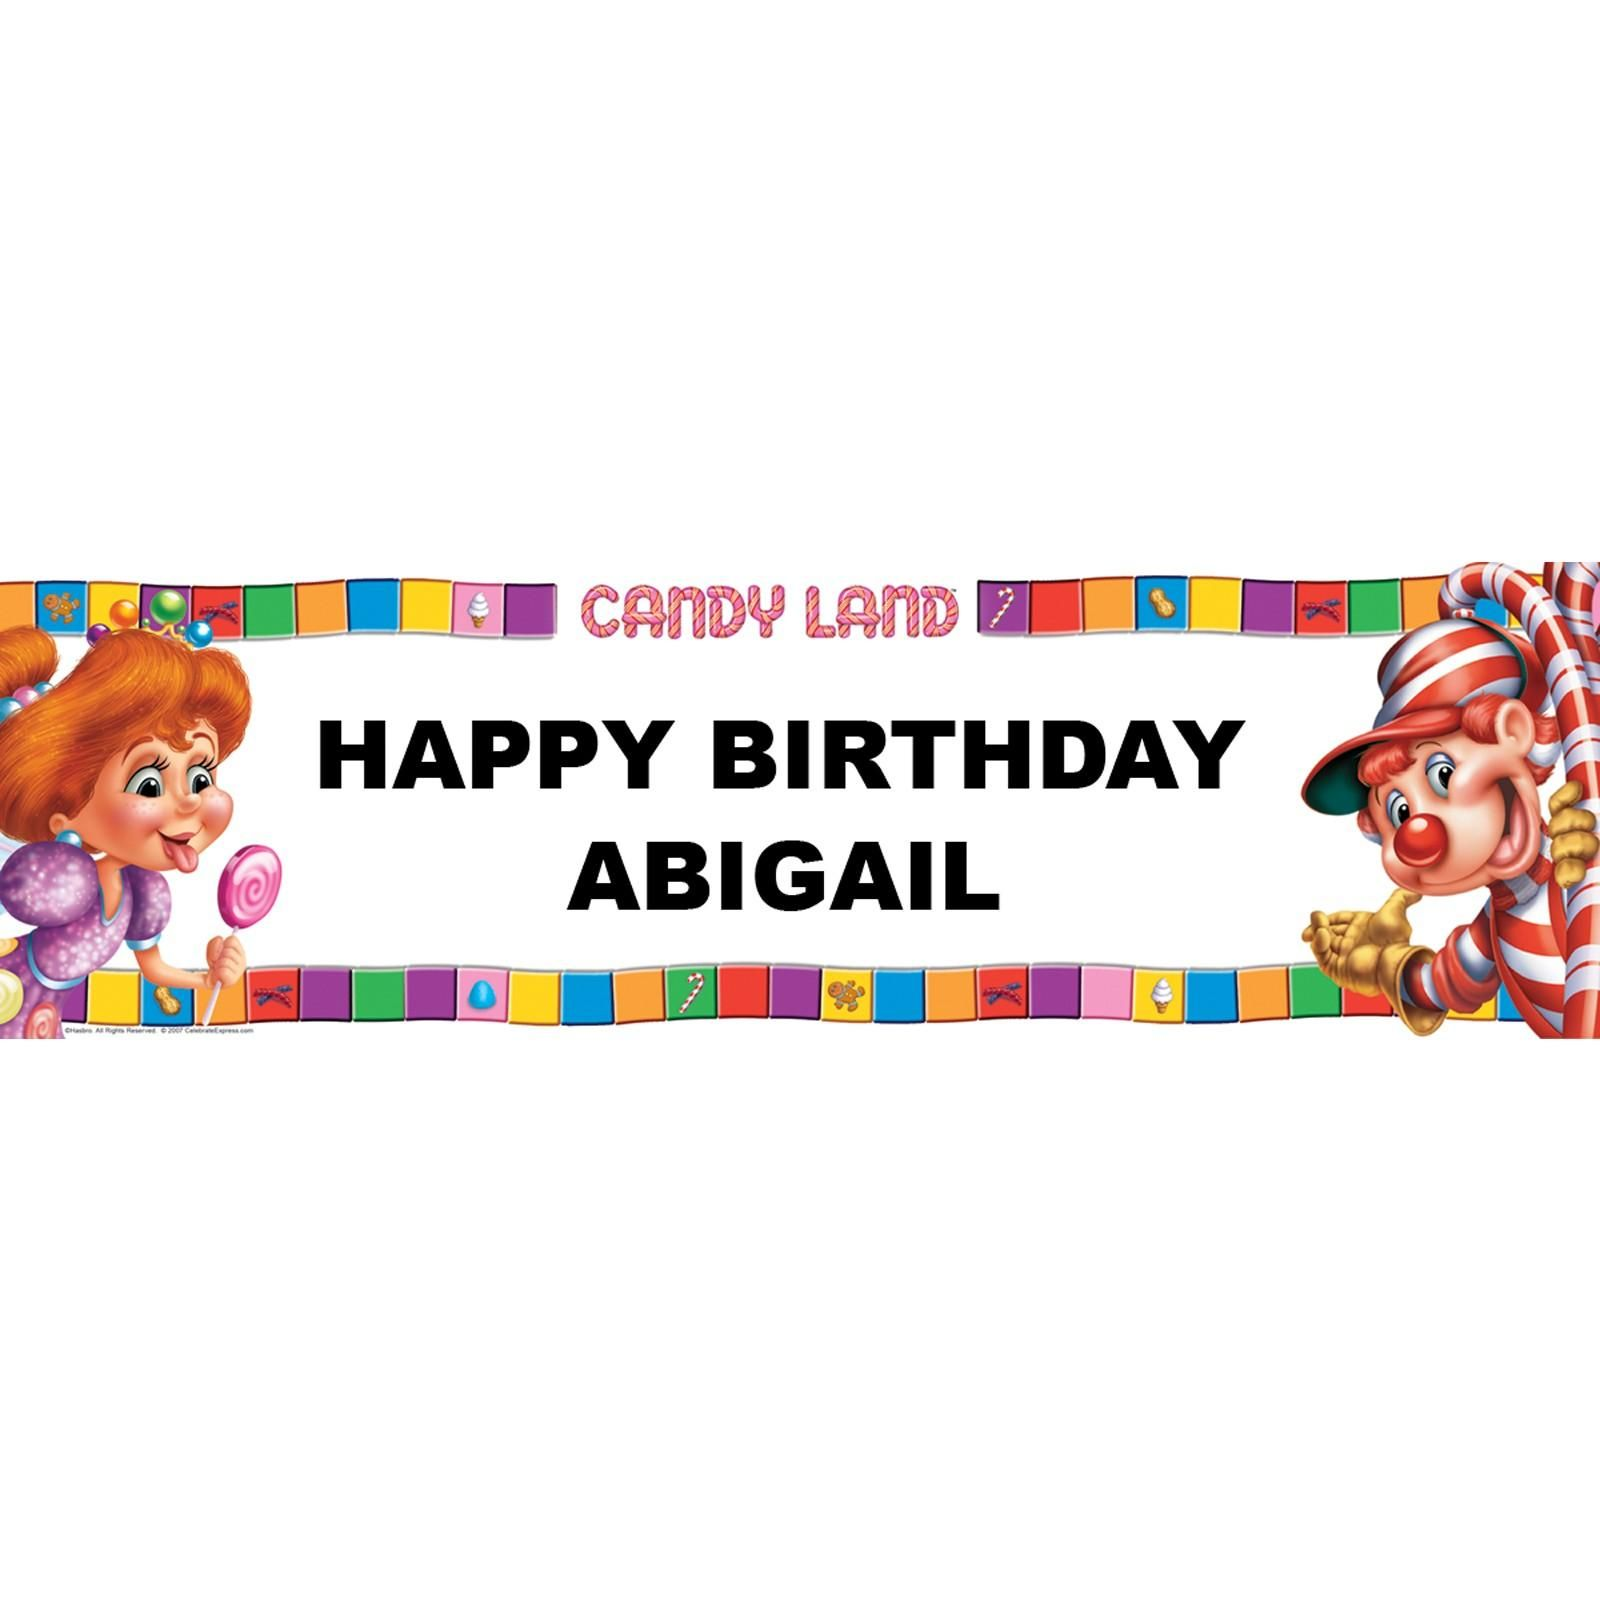 candyland birthday banners personalized ; 905edfd110aff062321775d887a0637b